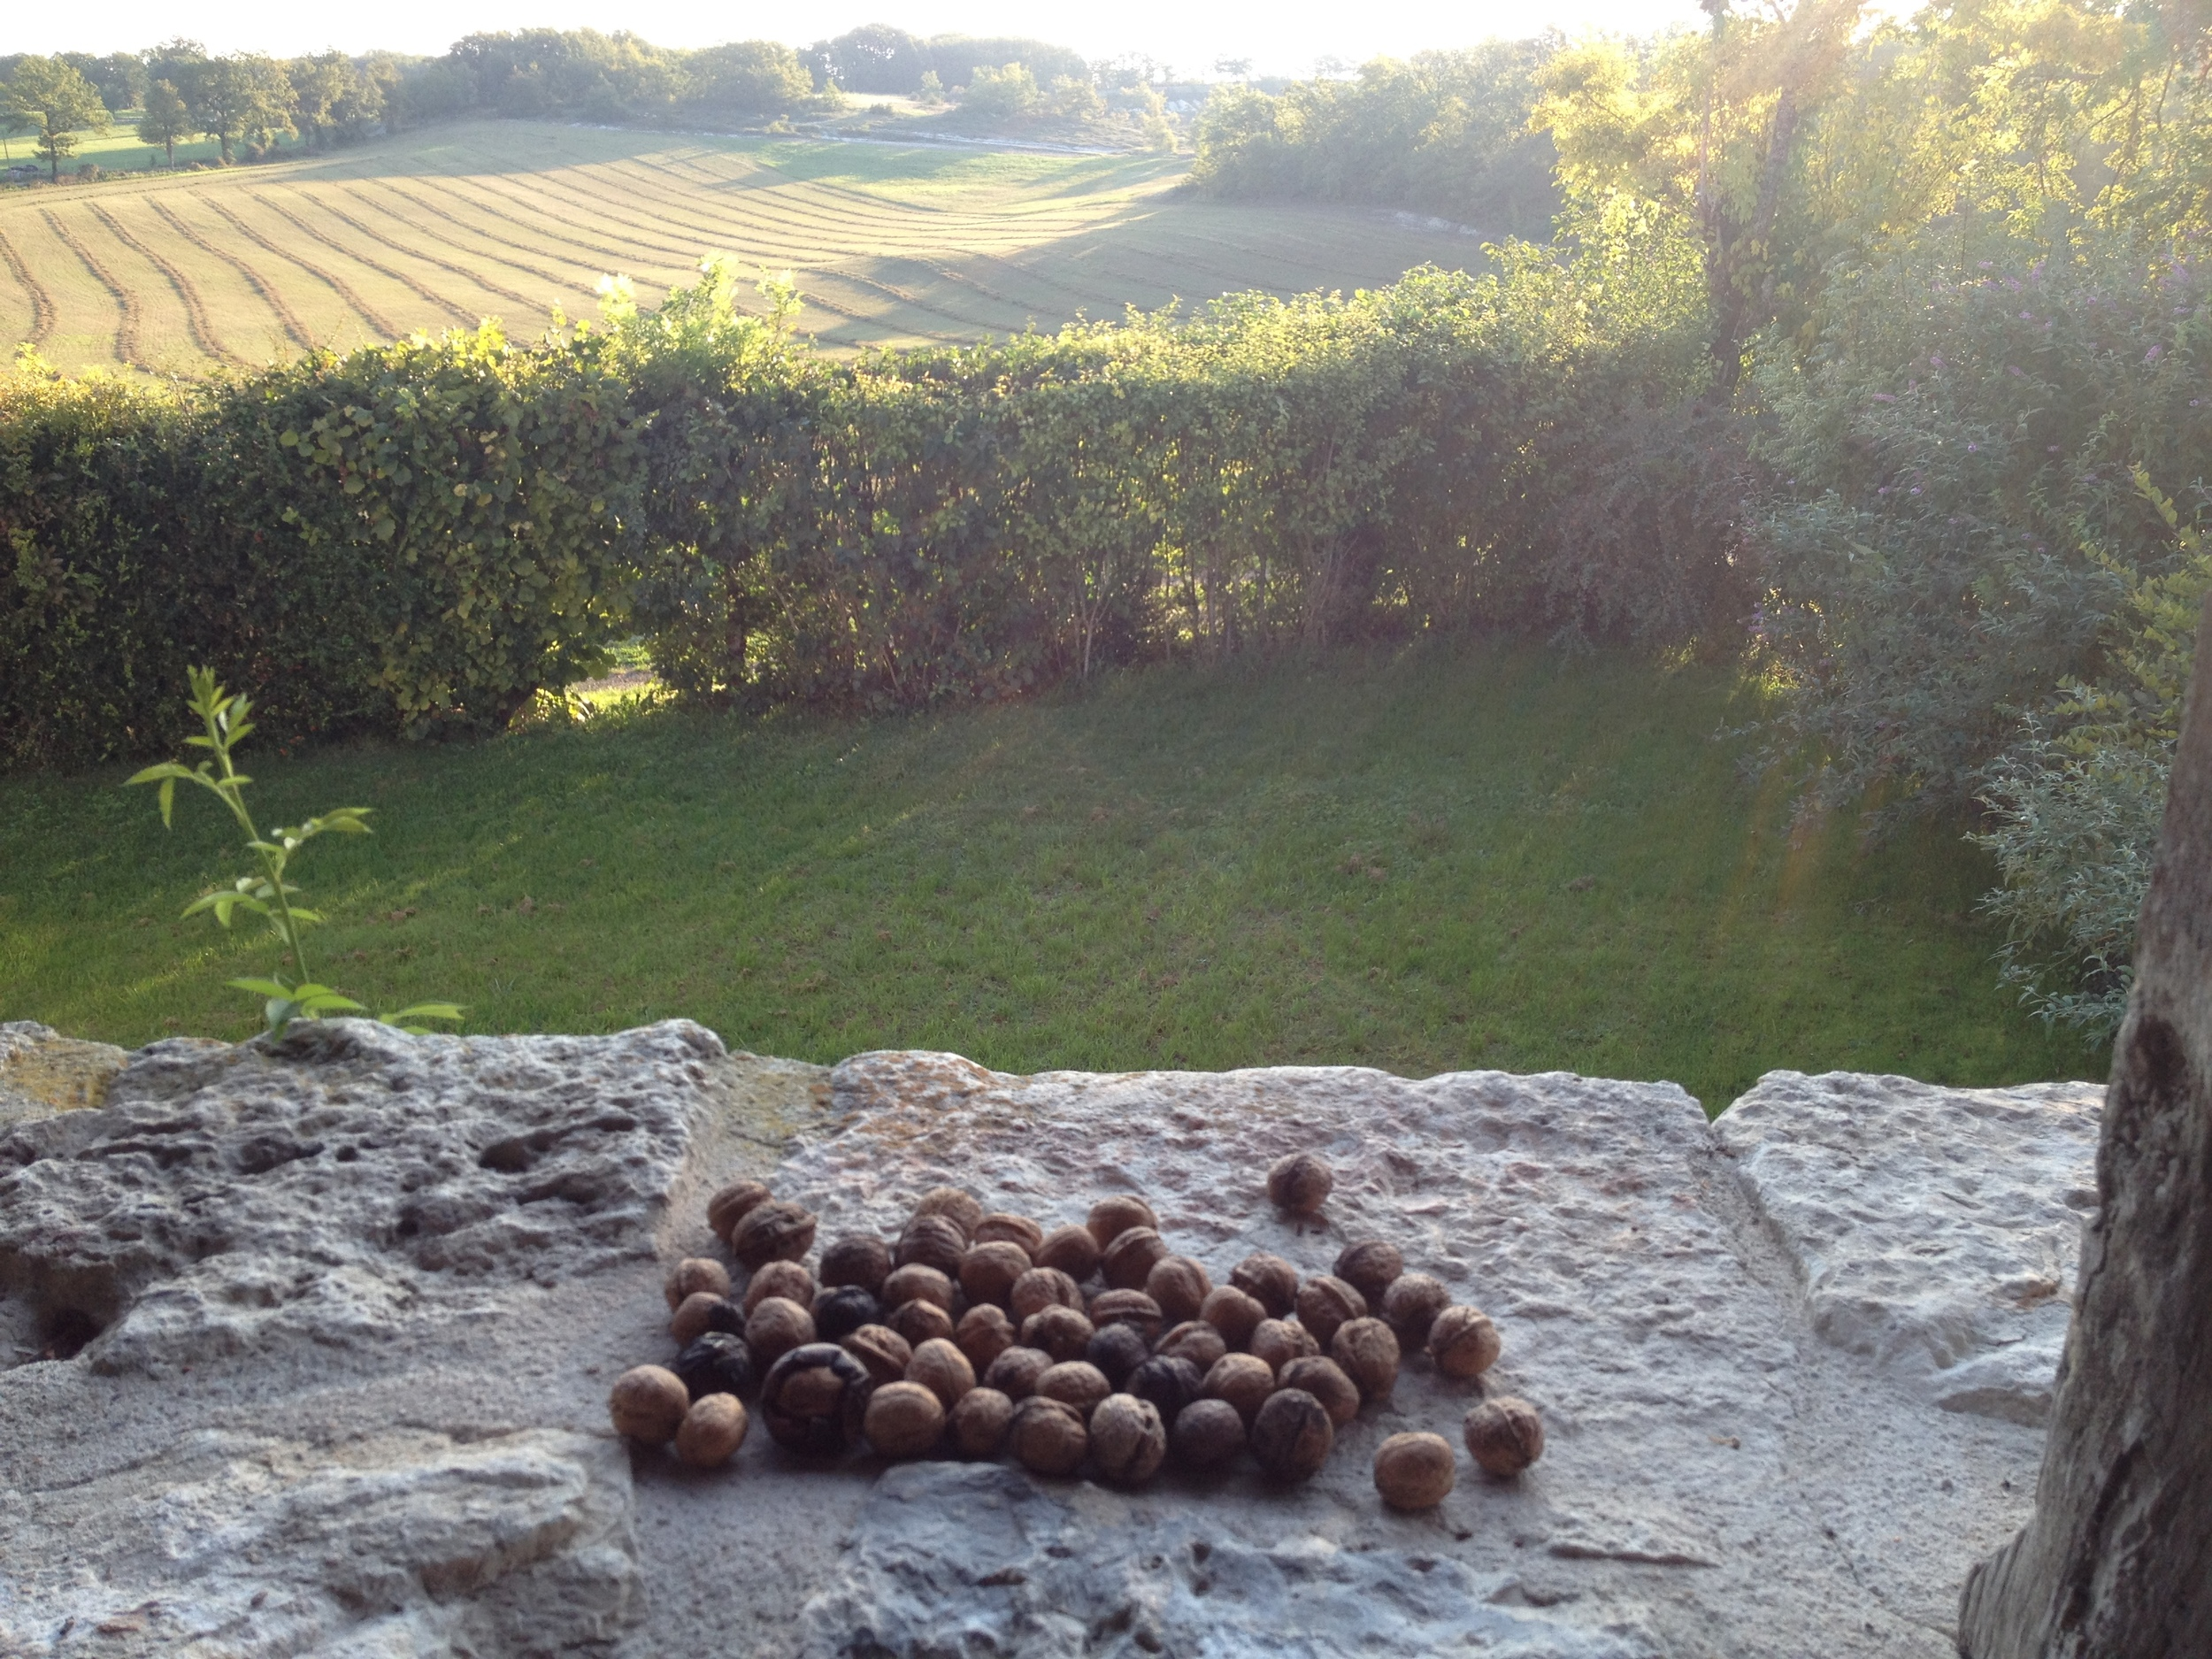 Walnuts drying on the bolly.